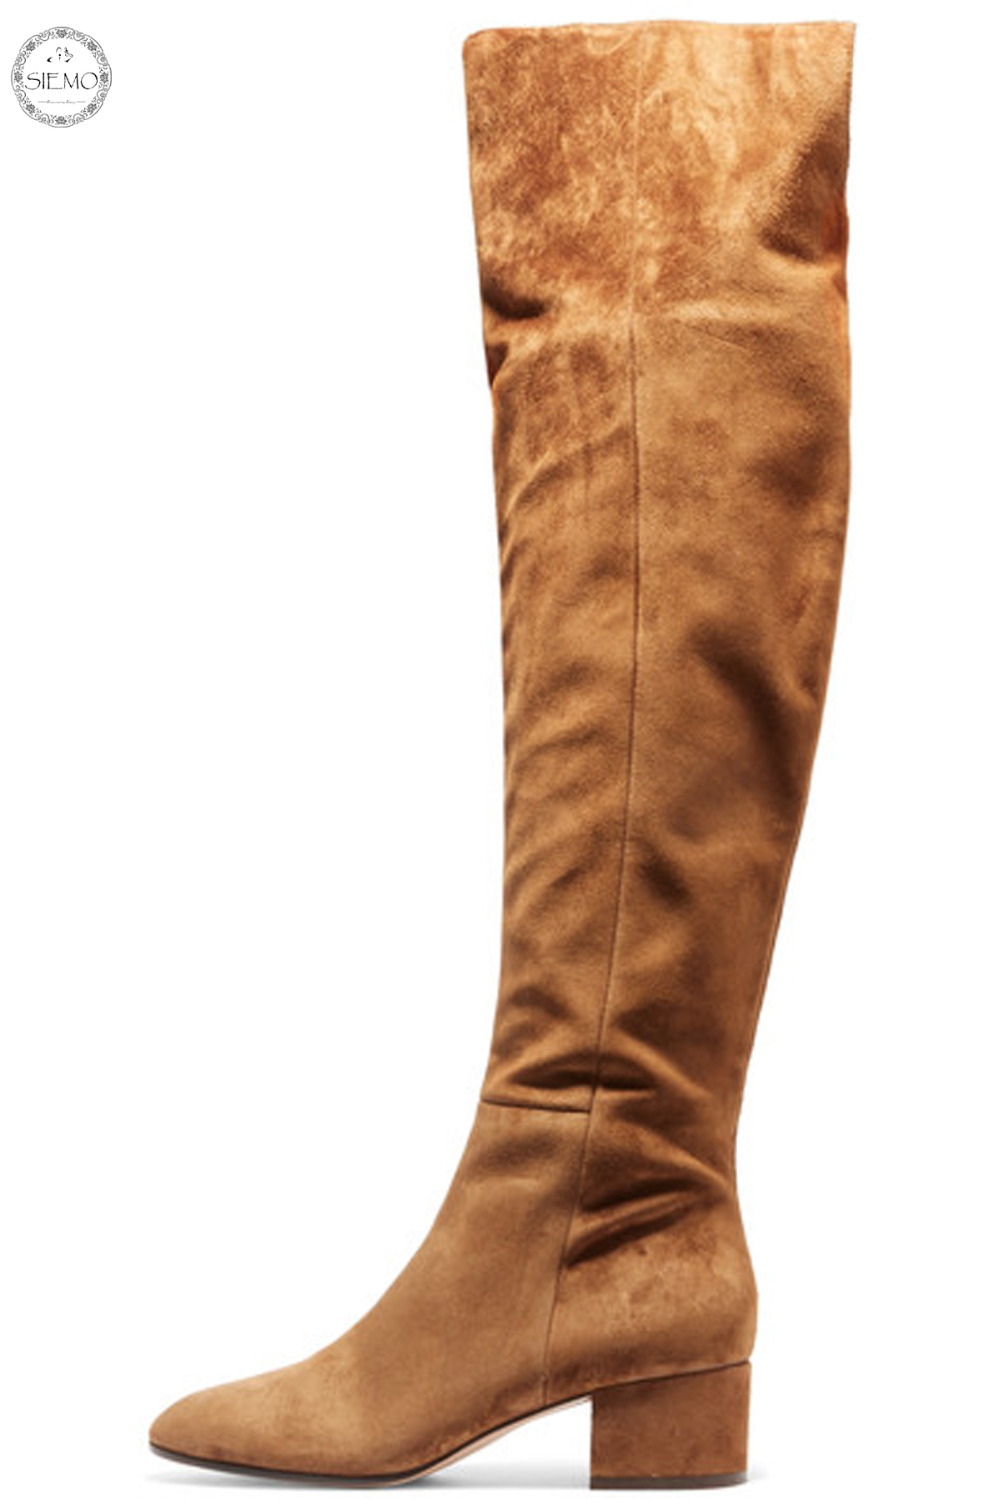 84c23fec65e Siemo Fashion Women Round Toe Low Heel Over the Knee Boots Casual Winter  Ladies Dress Shoes US Size 4 17 Big Size Customizable-in Over-the-Knee Boots  from ...